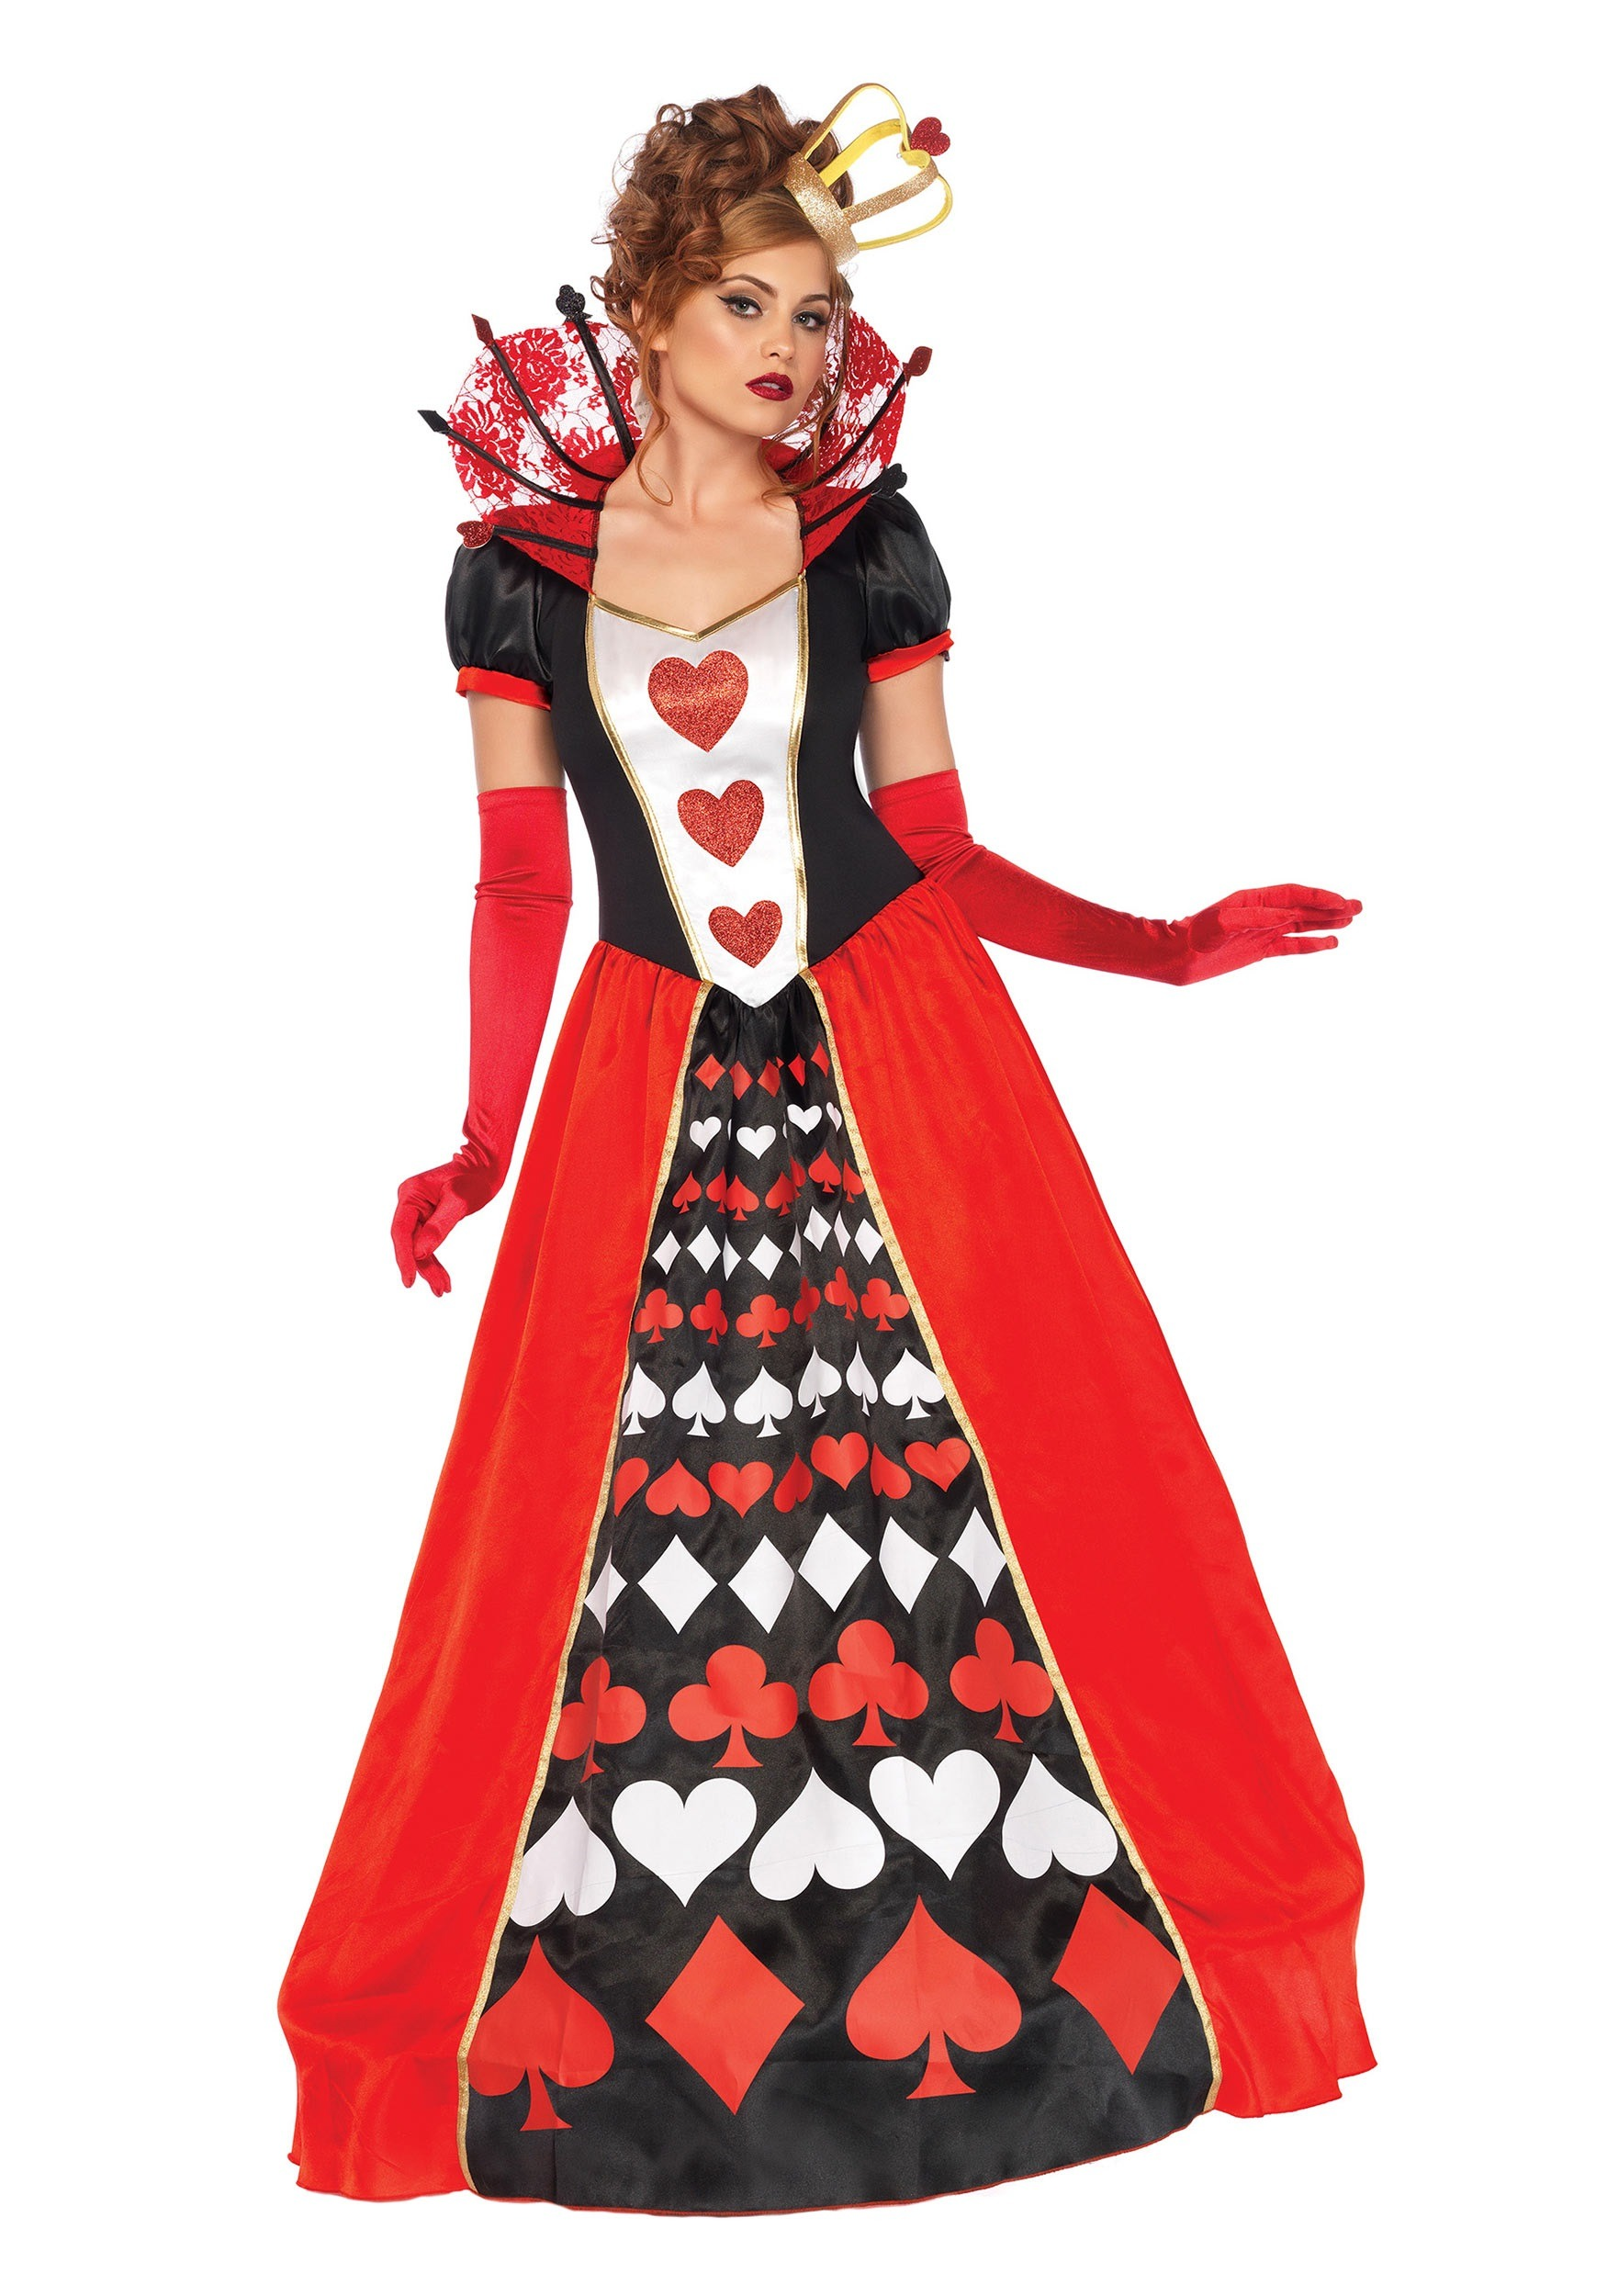 Royal Red Queen Plus Size Adult Halloween Costume